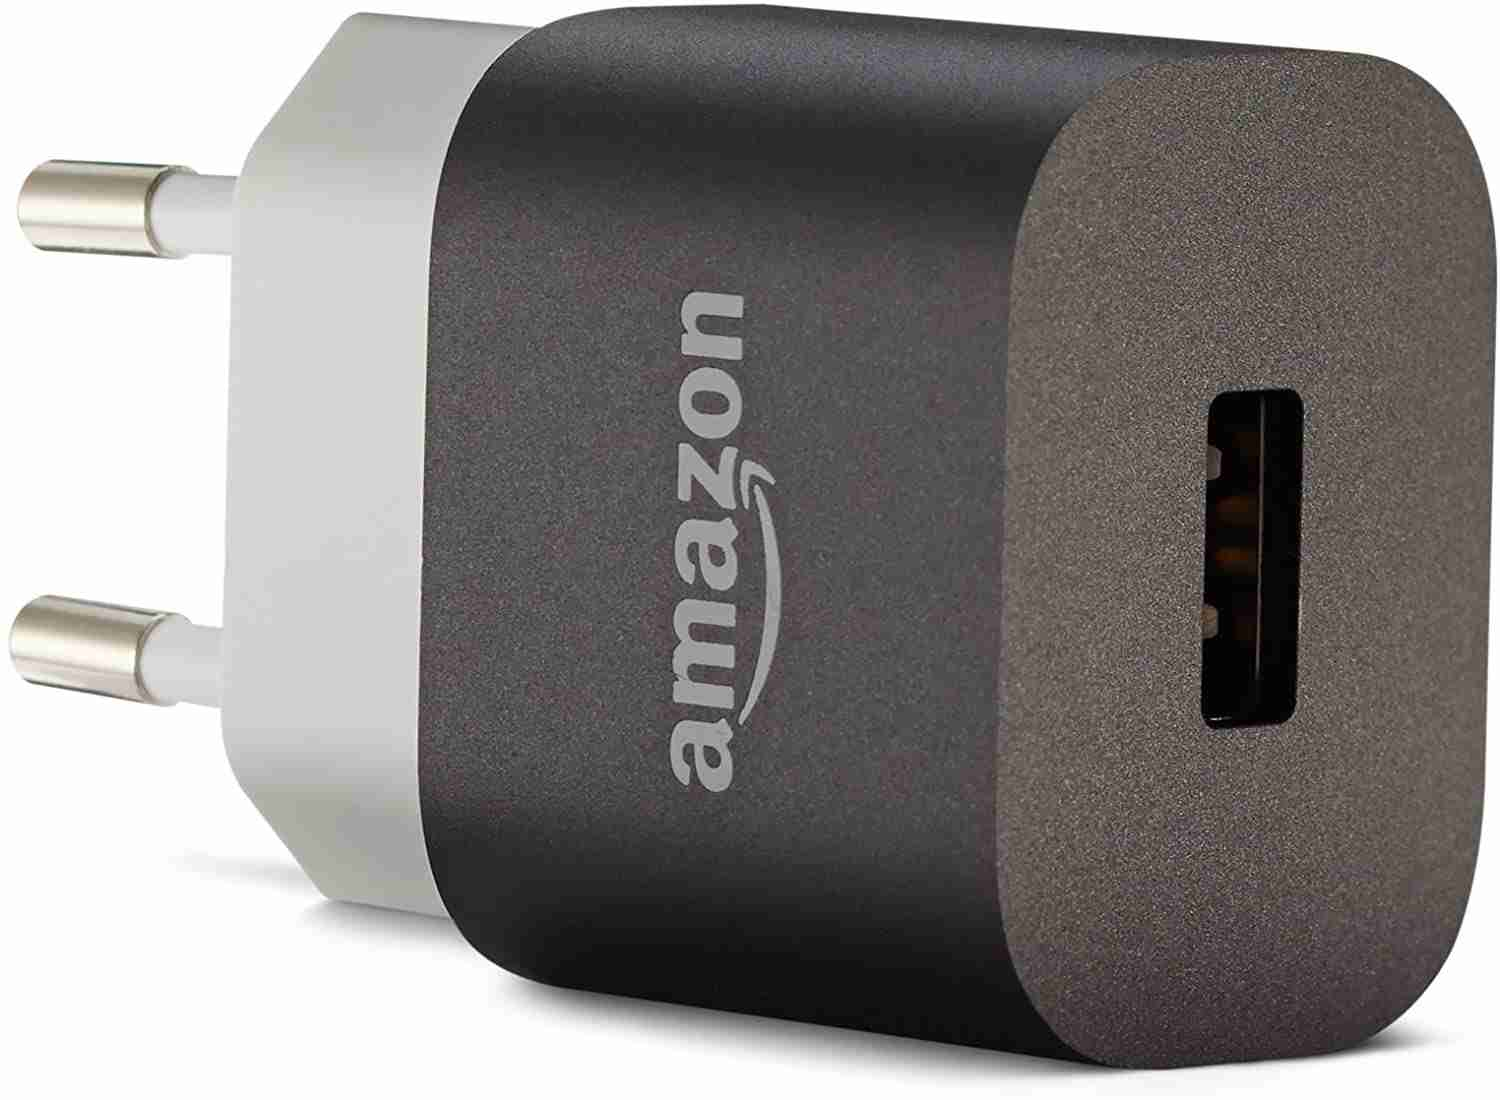 Caricabatterie USB Amazon